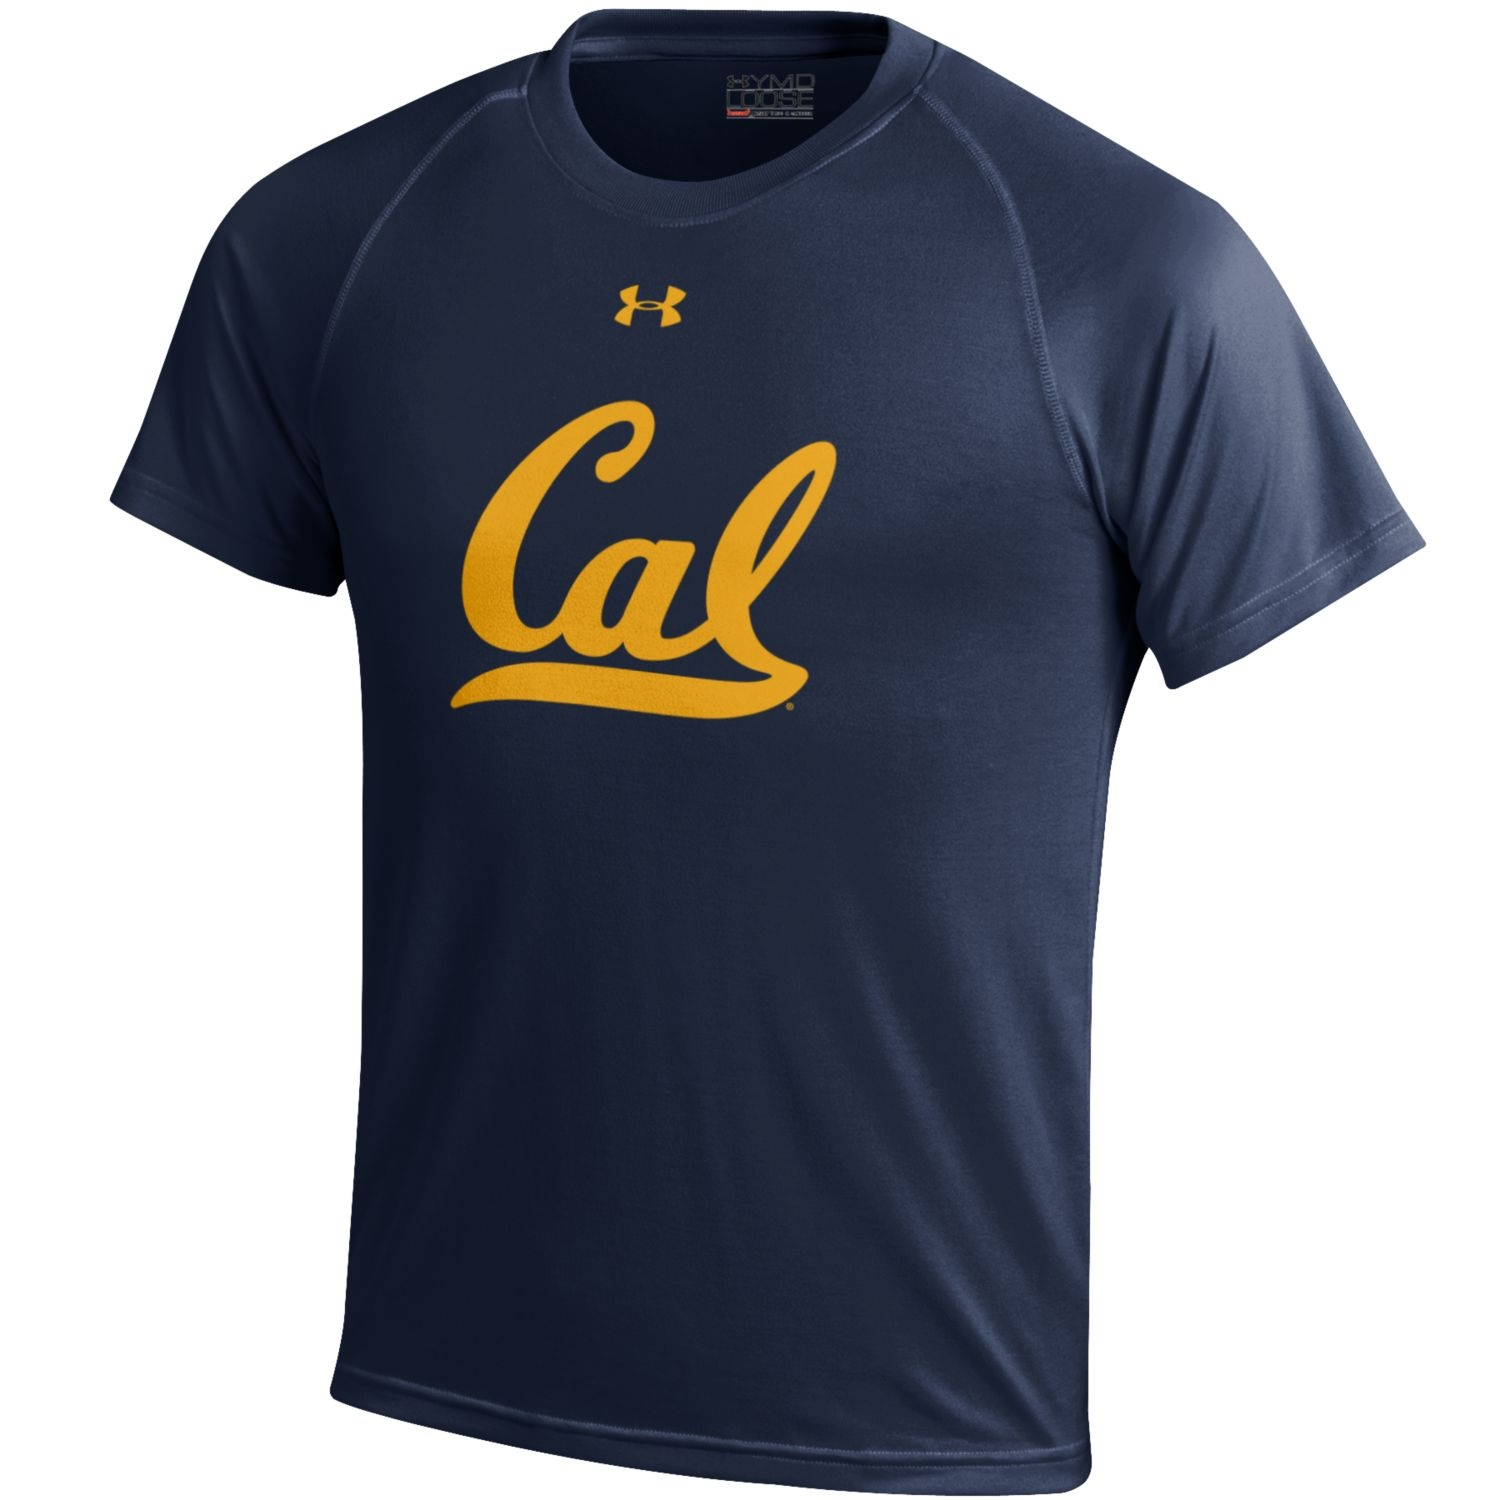 University of California Berkeley Under Armour Youth Nu Tech Tee C Bear